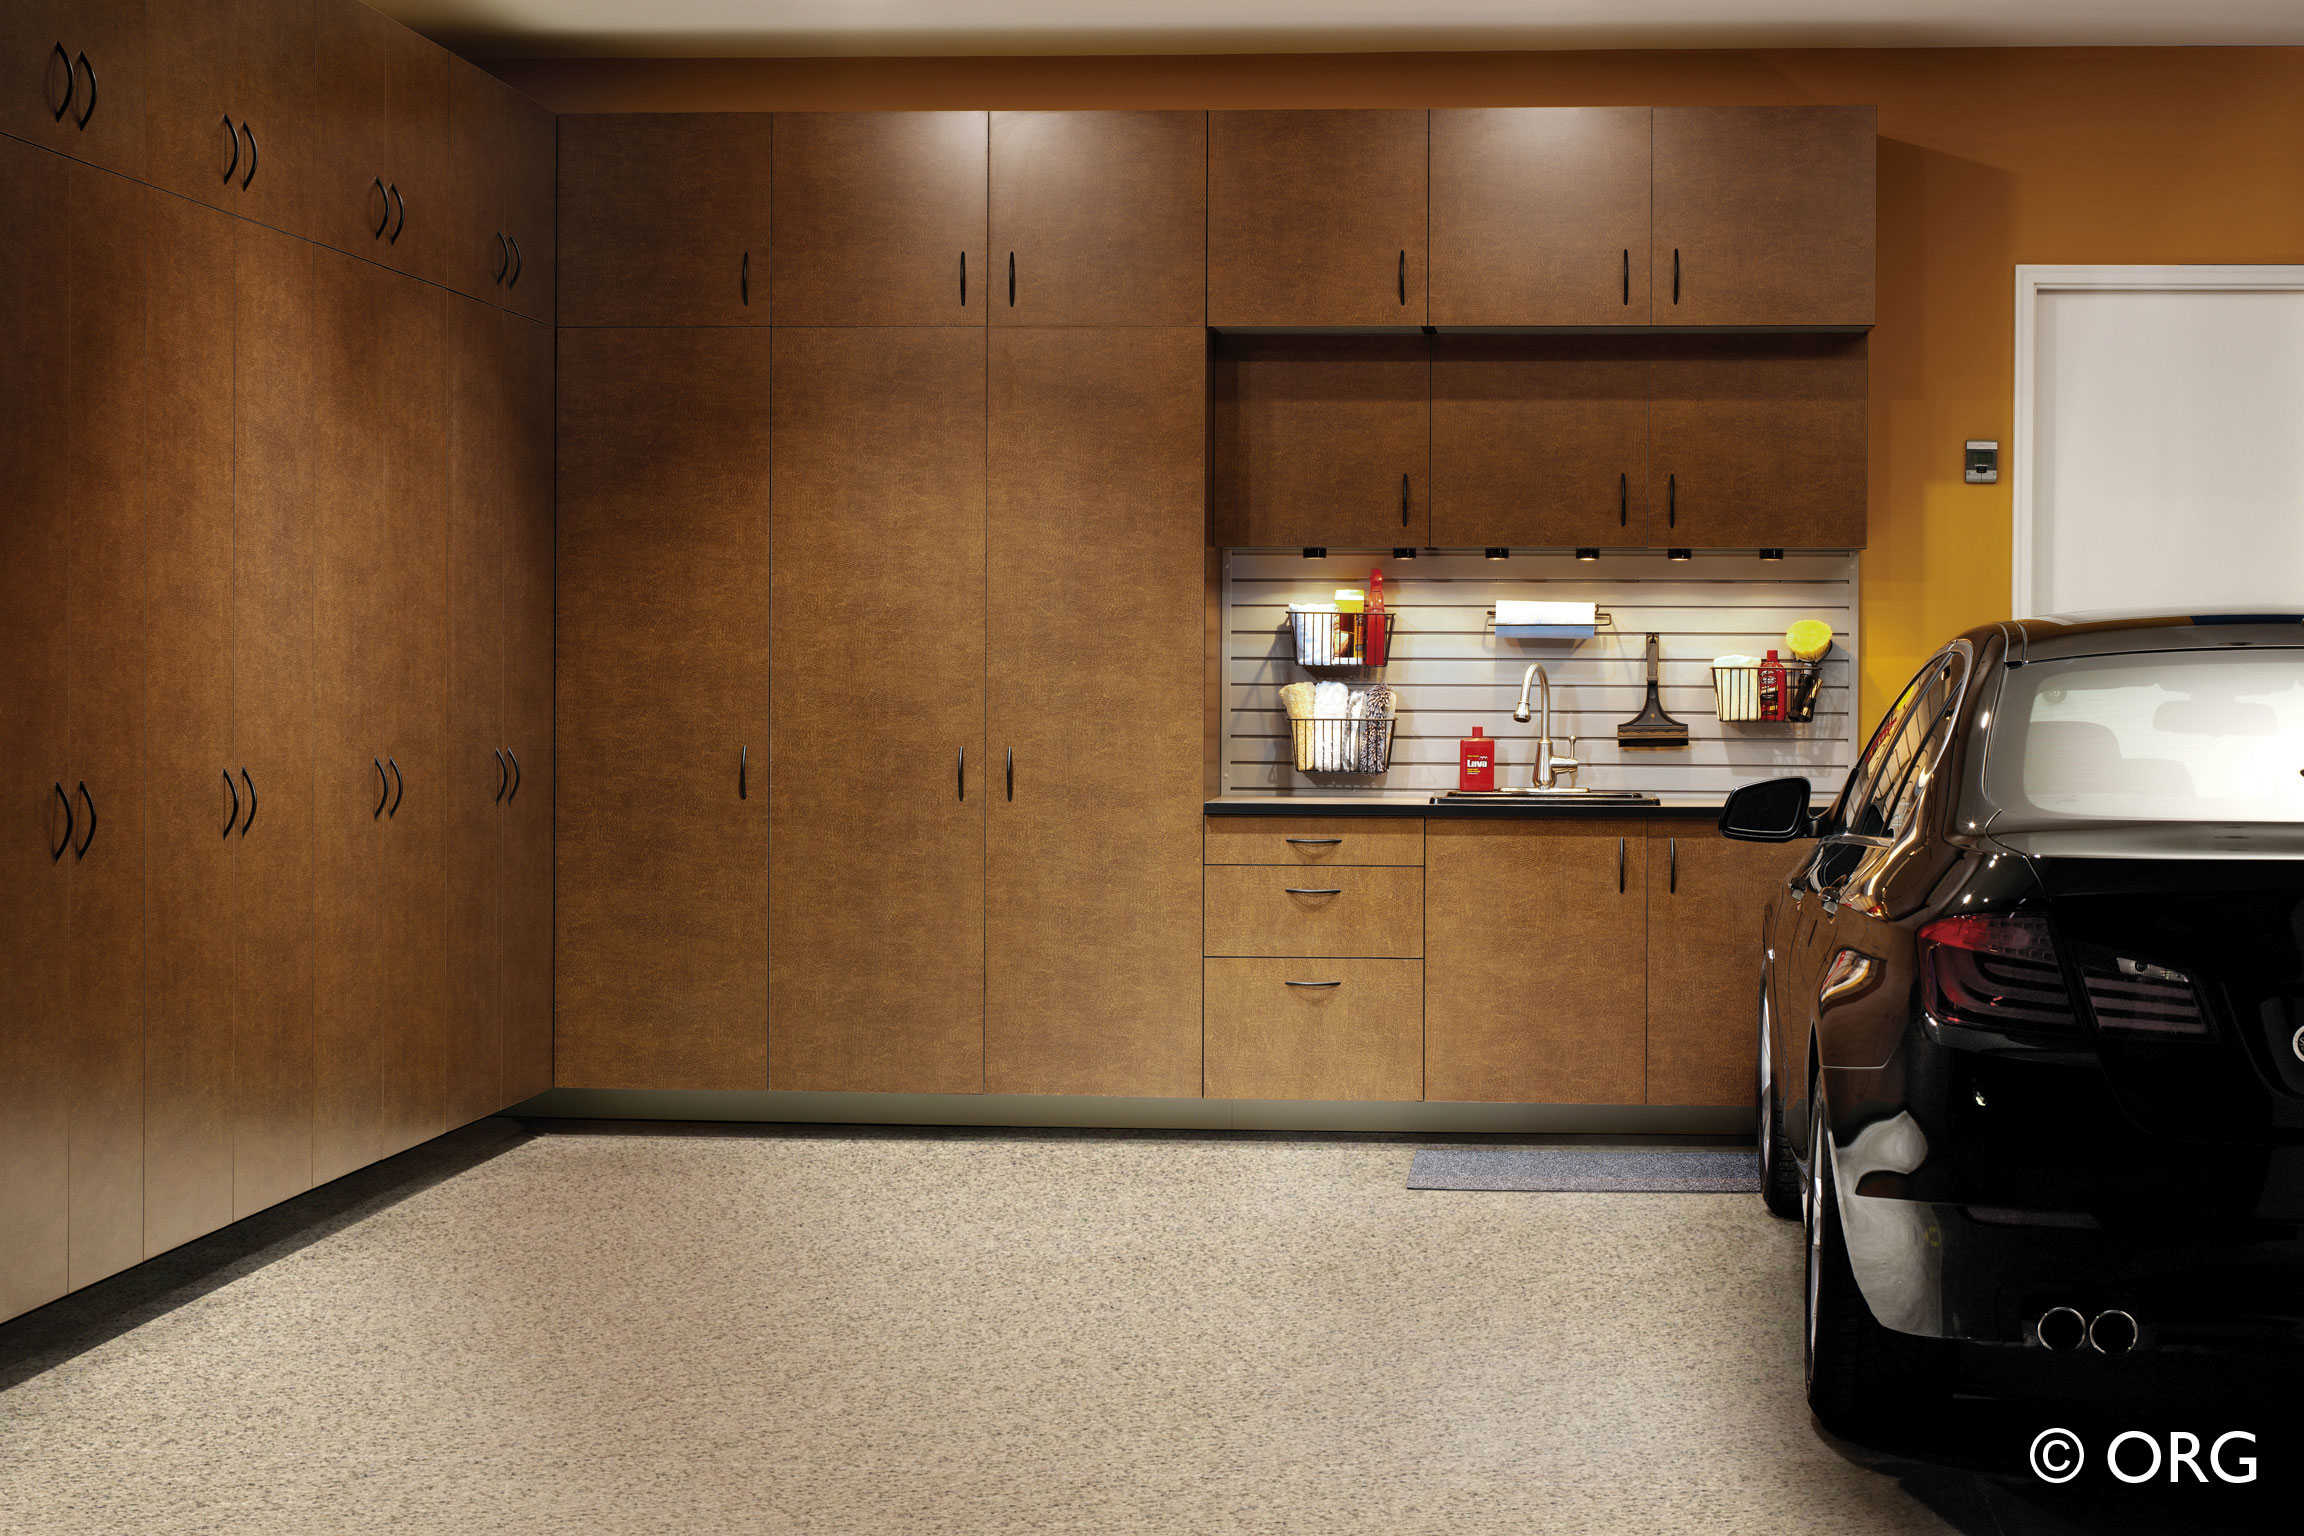 Garage Cabinets Reddit 3 Garage Storage Systems To Reclaim Space Spacemakers